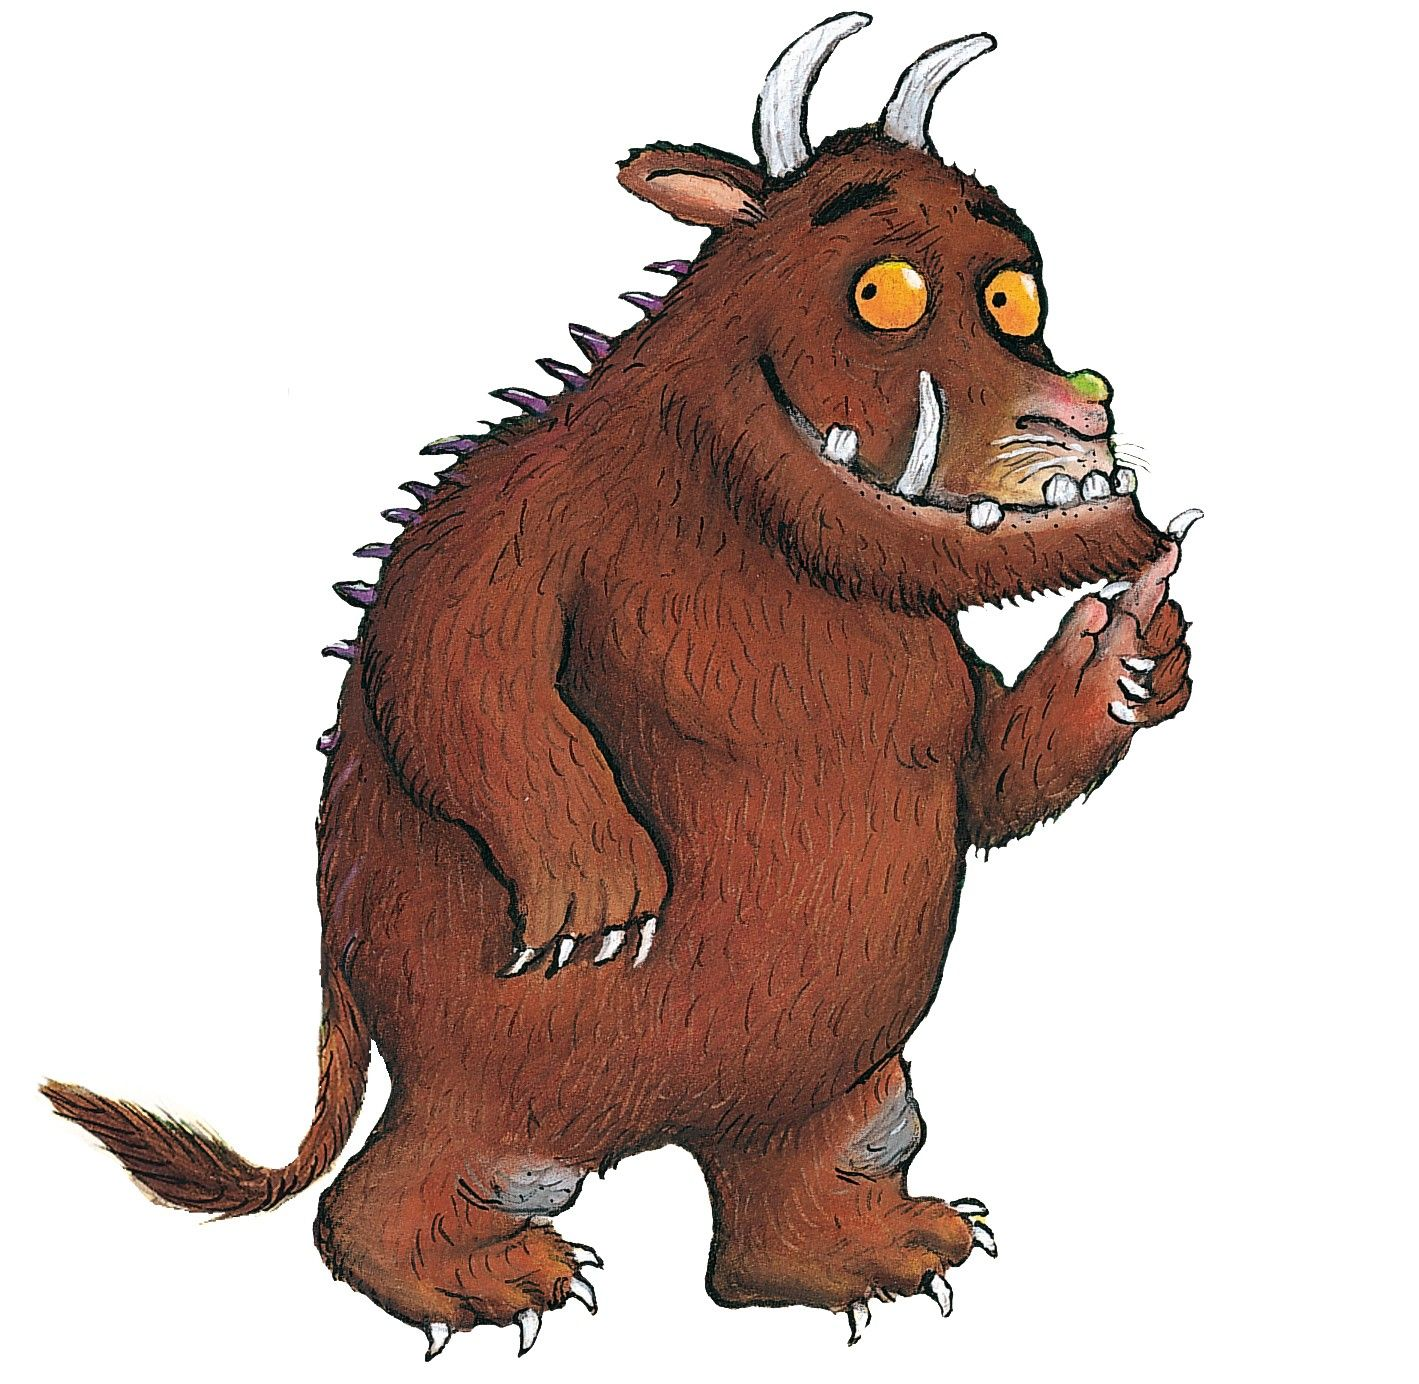 Image result for the gruffalo characters